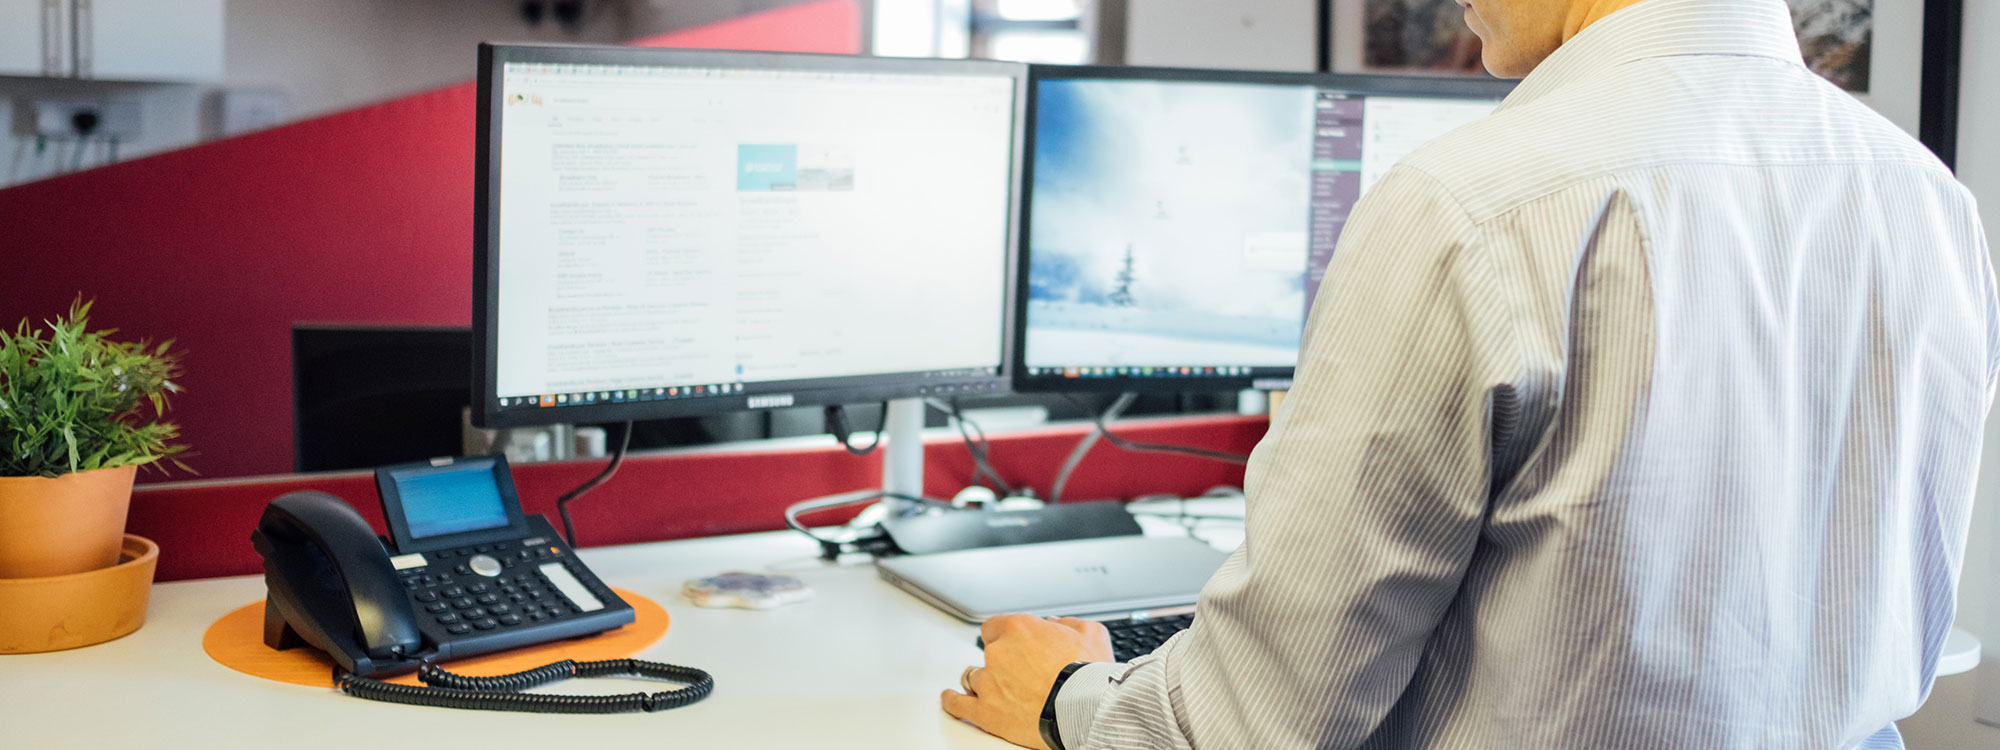 image showing man with 2 computer screens